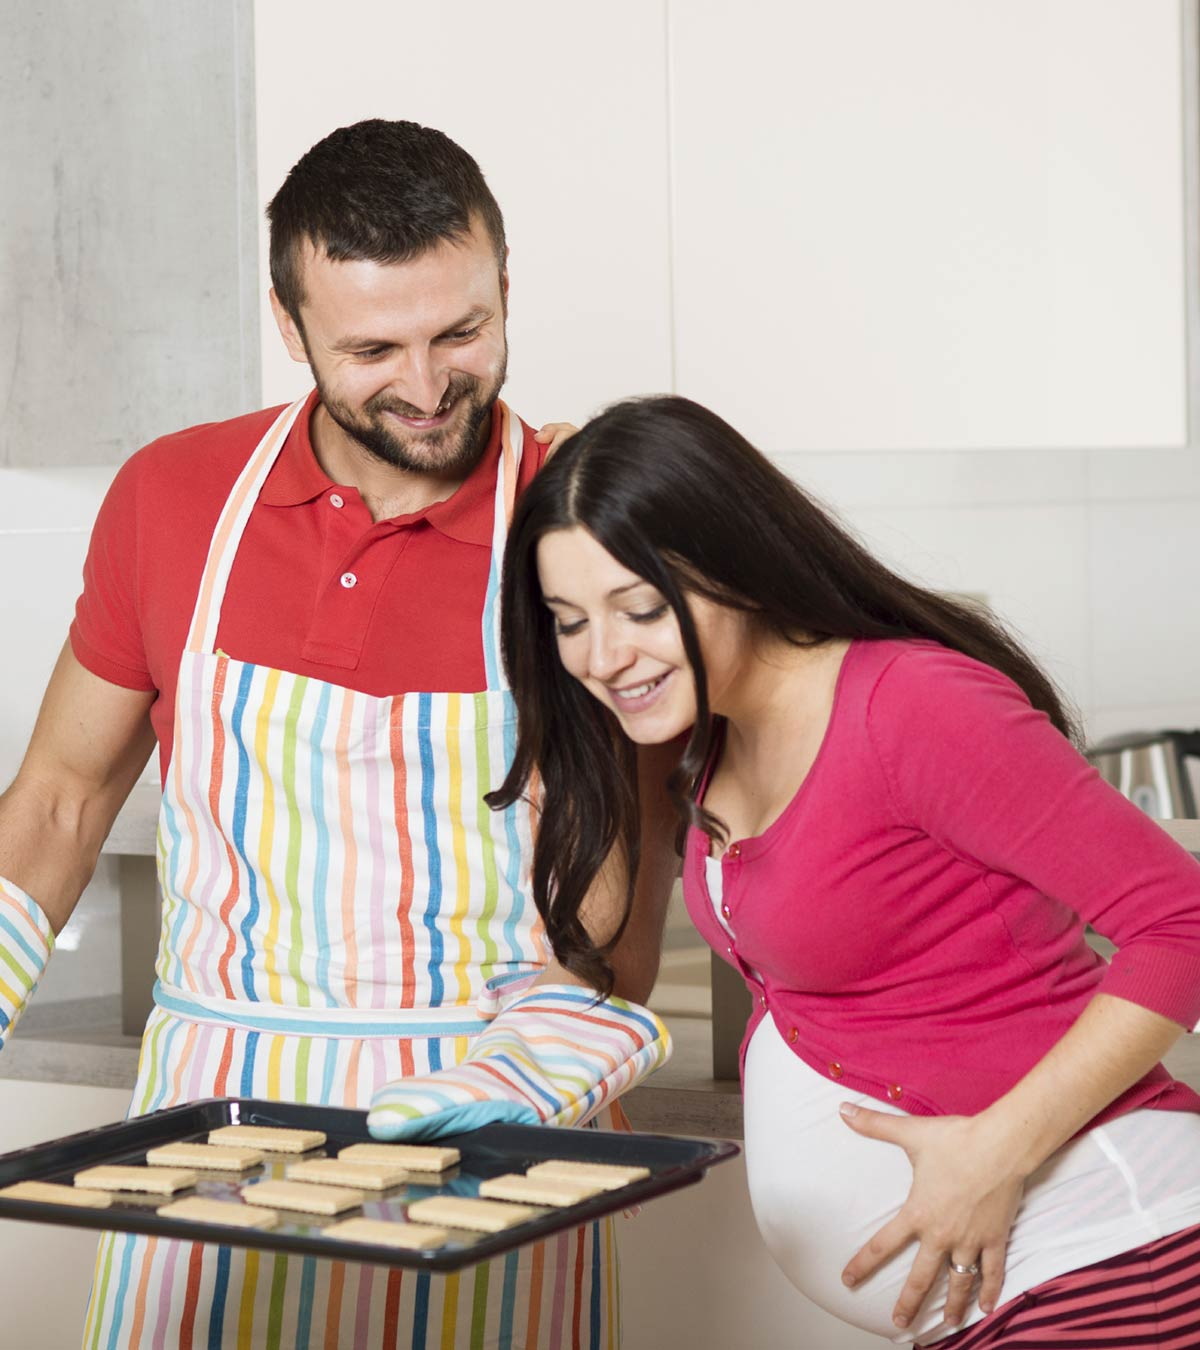 Wife And Husband Relationship During Pregnancy This Is What You Need To Know